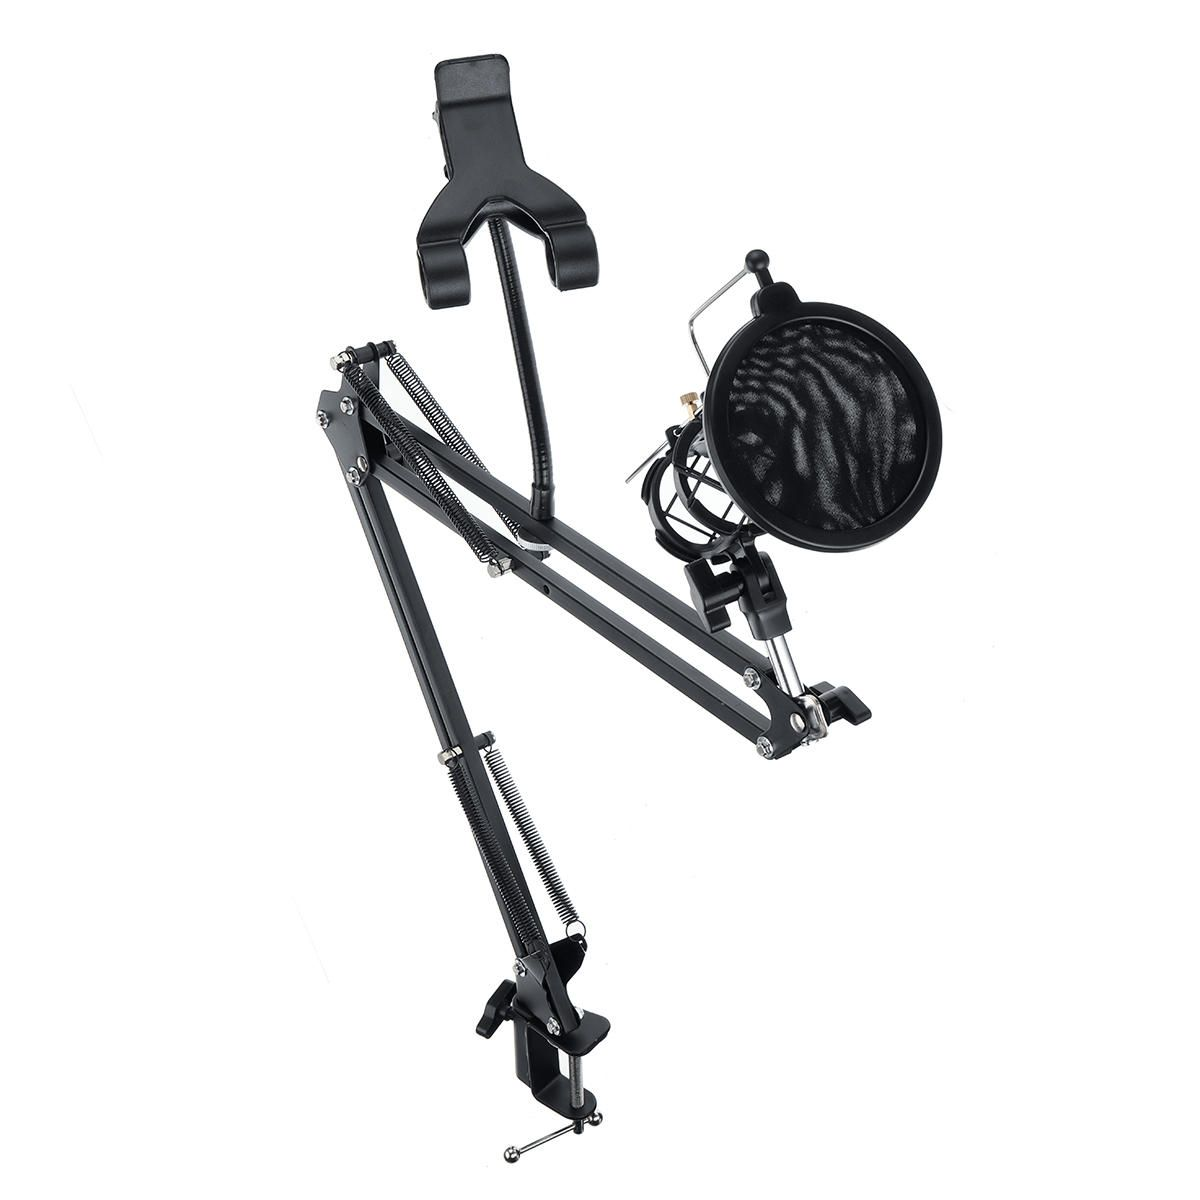 QCF US$28.26 95cm Microphone Metal Bracket Suspension Arm Quakeproof Mobile phone Adjustable Blowout Preventer Table Mounting Clamp